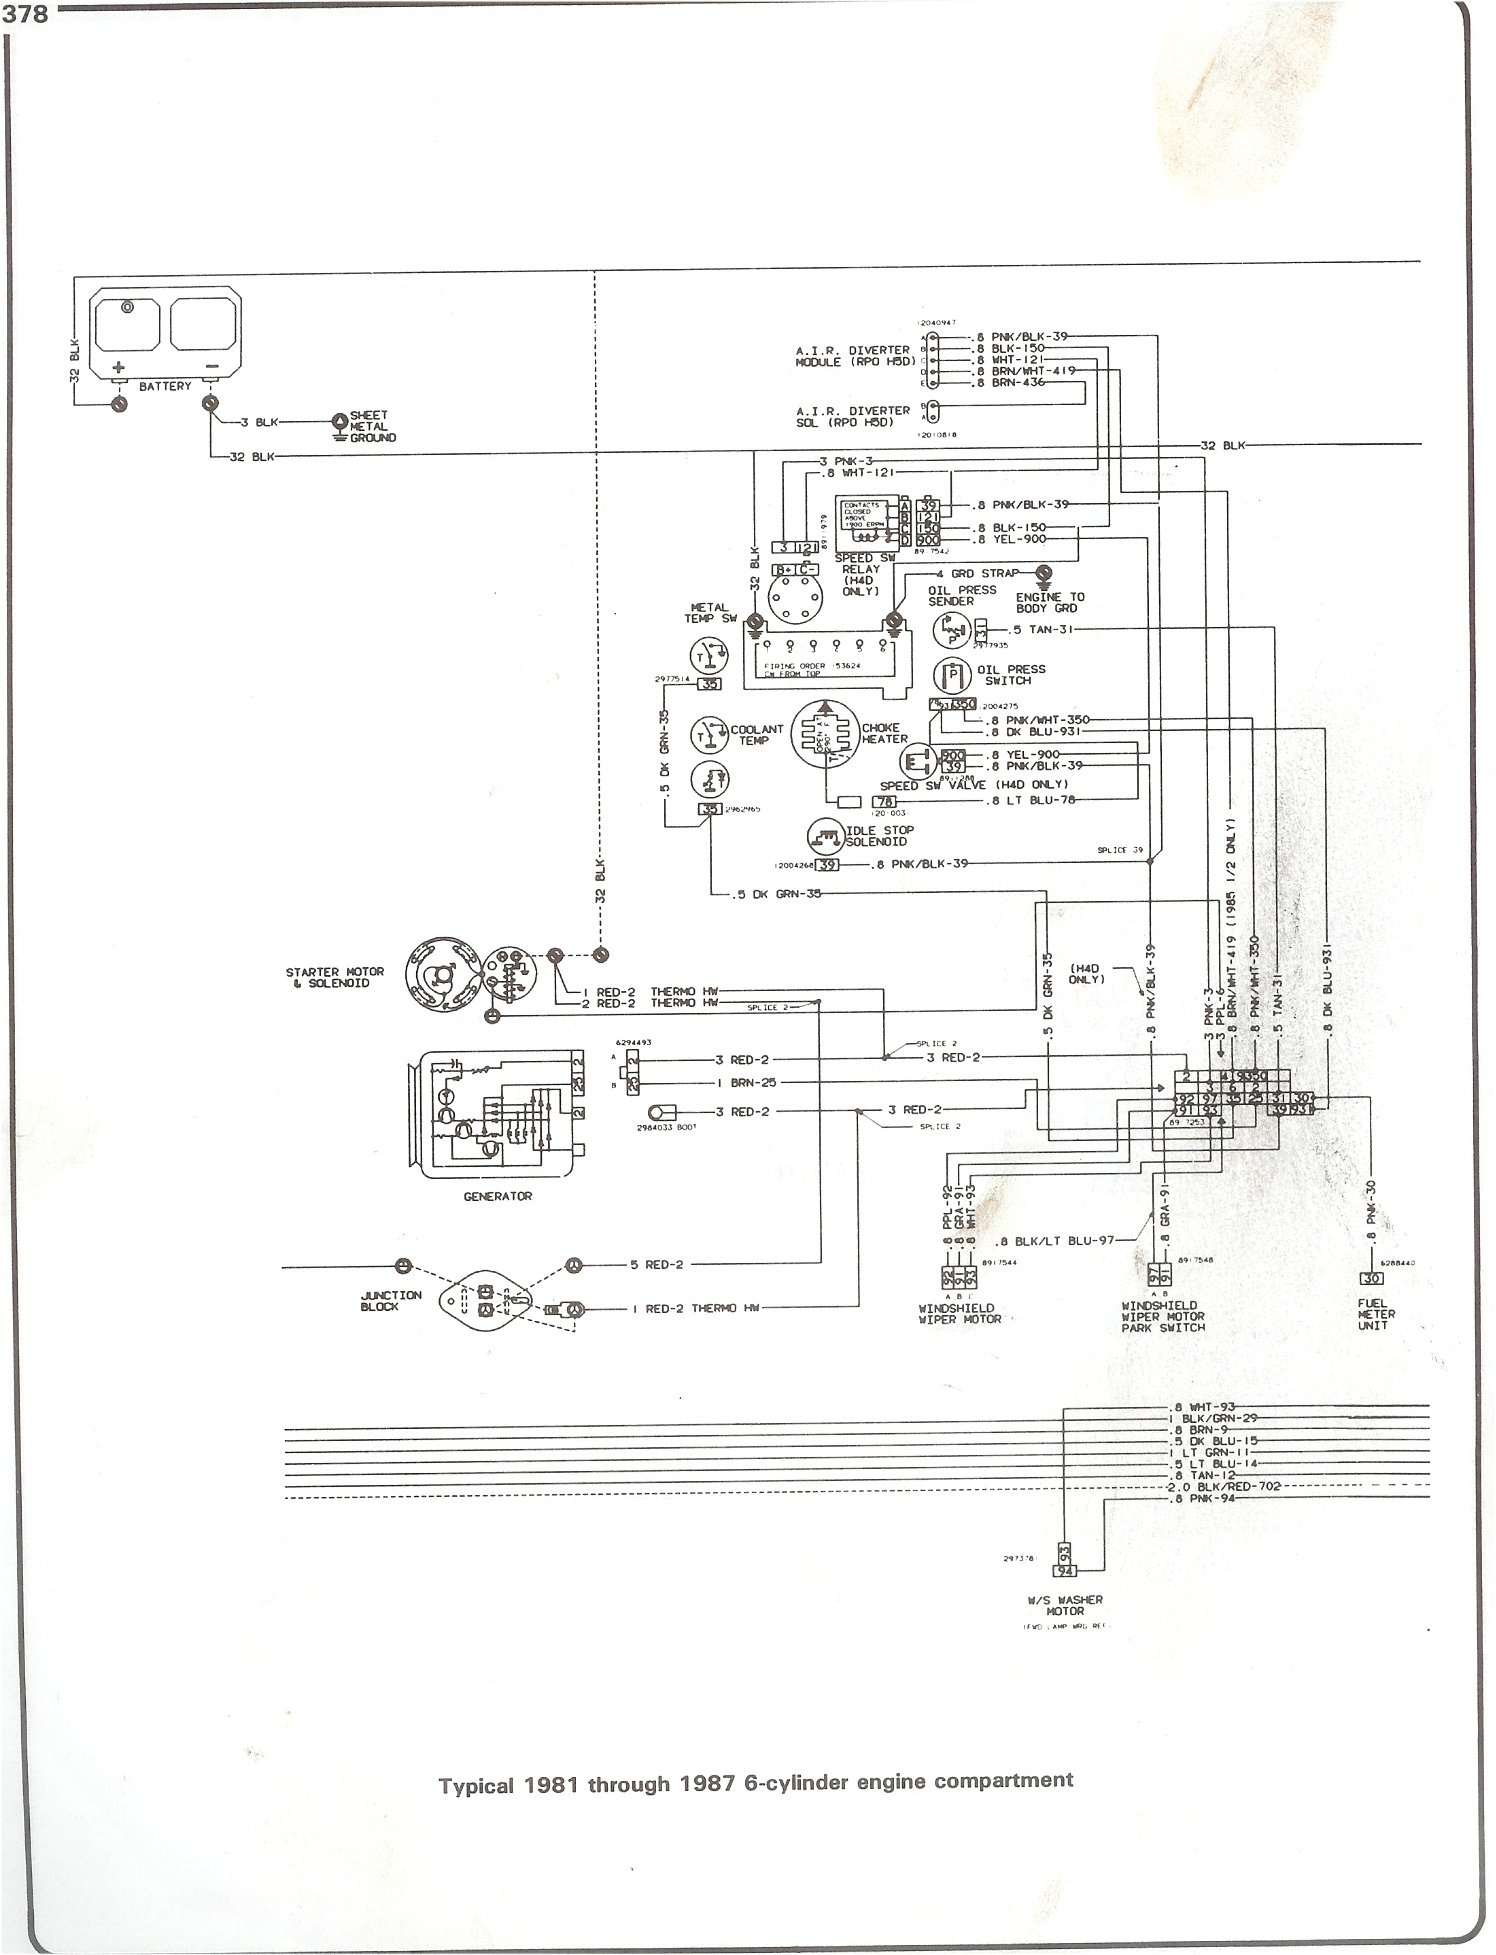 87 chevy truck ignition wiring diagram list of schematic circuit 1970 Chevy C10 Wiring-Diagram